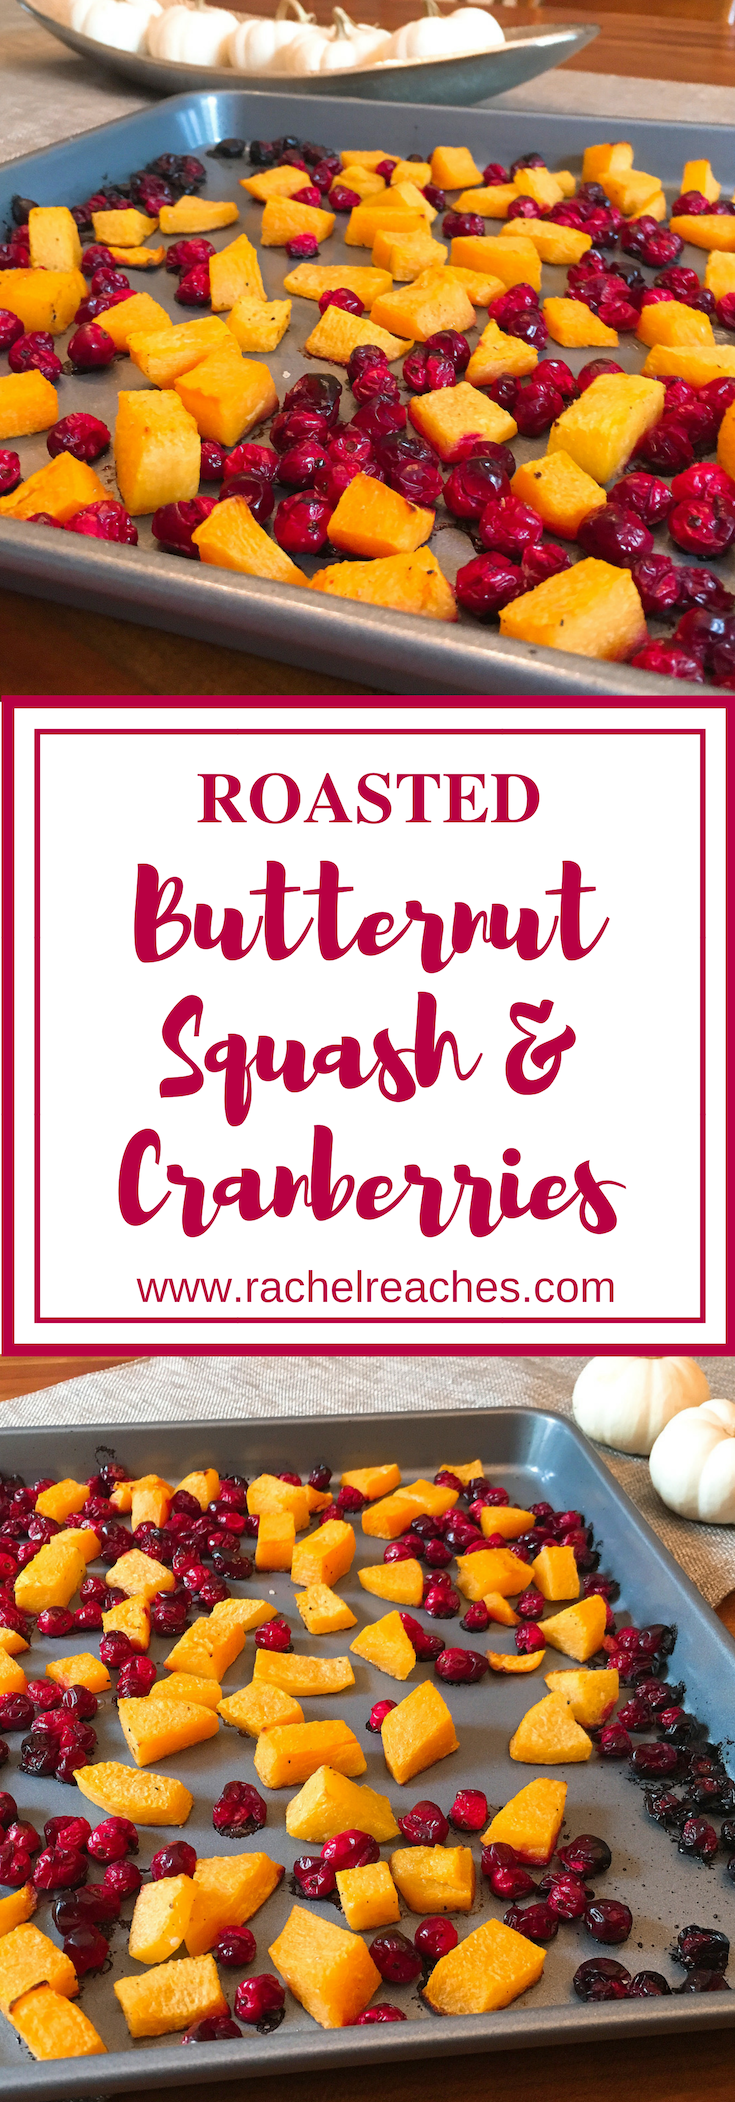 Butternut Squash & Cranberries Pin - Healthy Eating.png